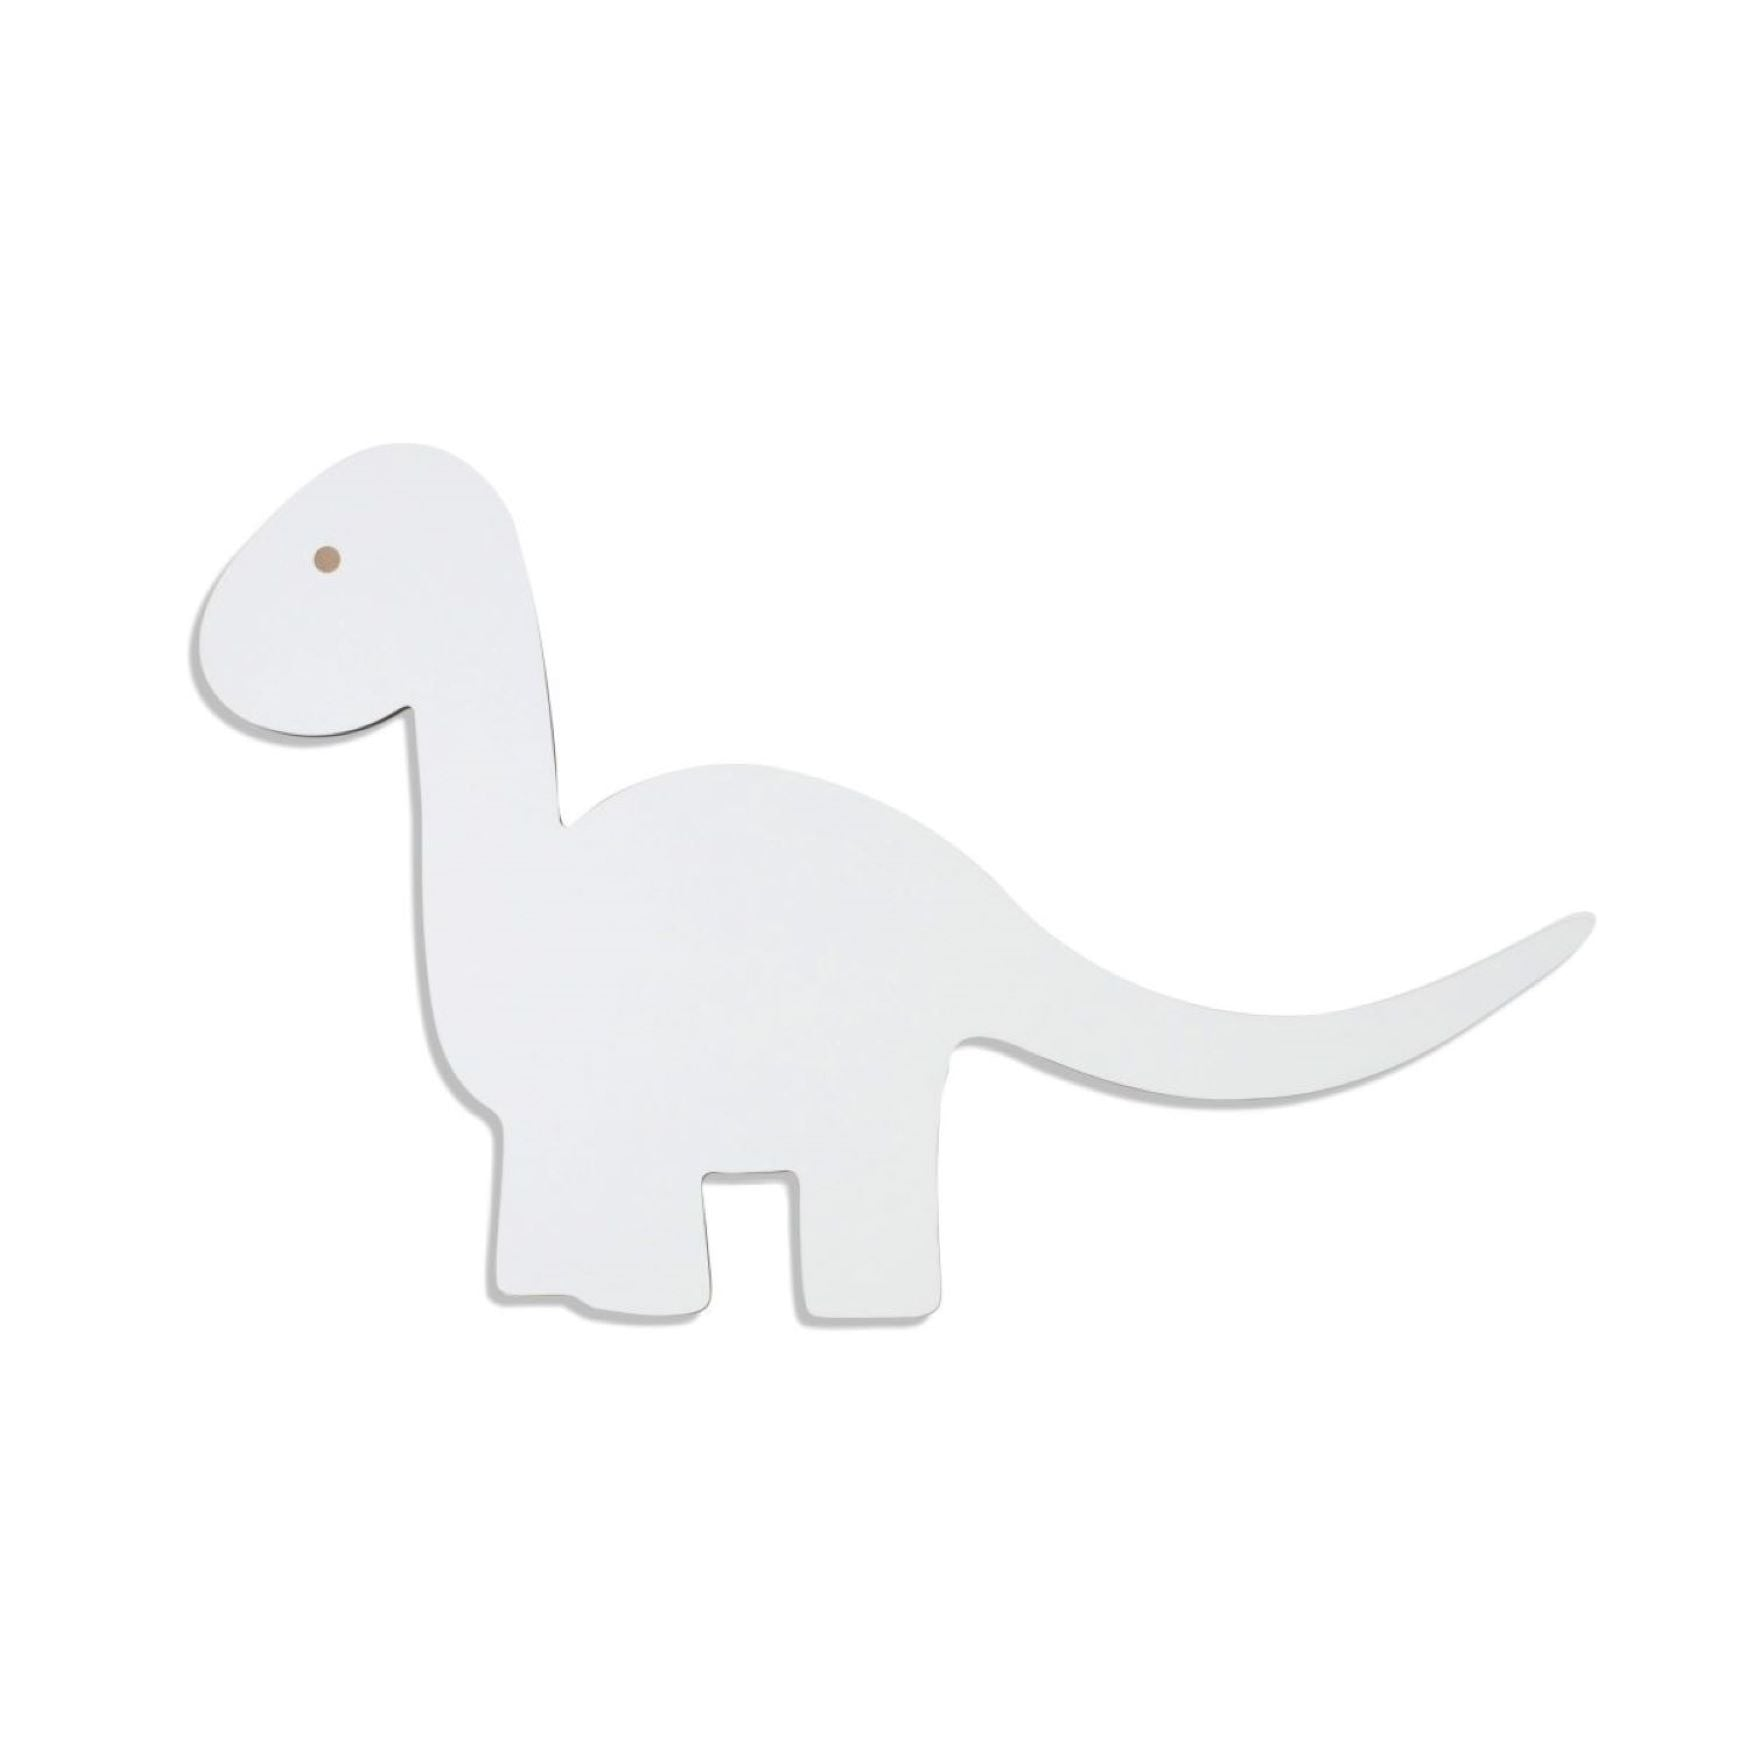 MaseLiving Dino Lamp in White